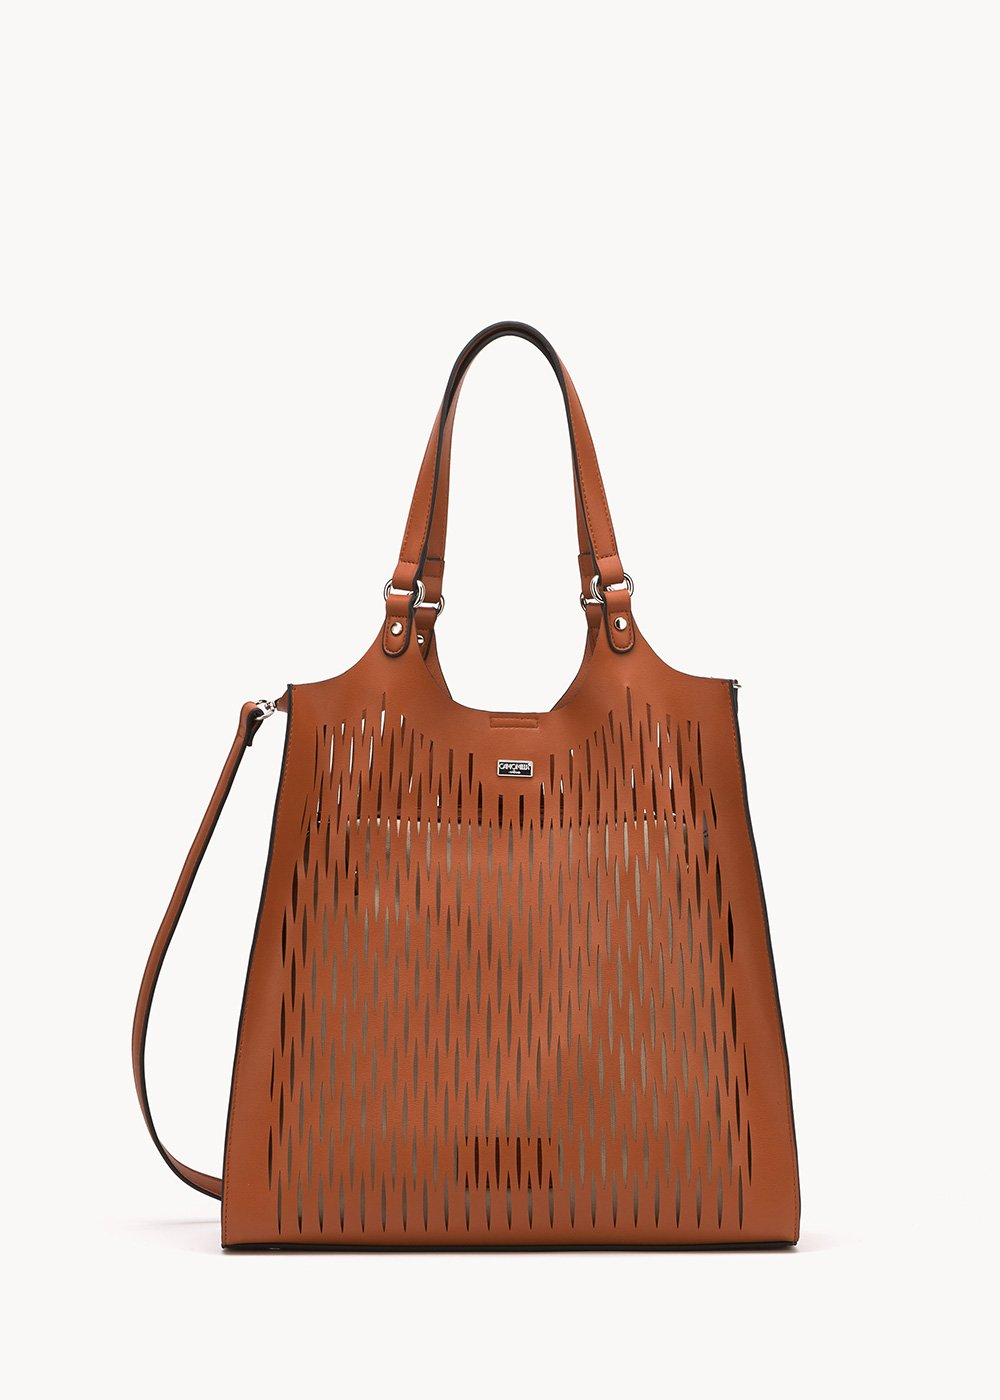 Bailee openwork shopping bag